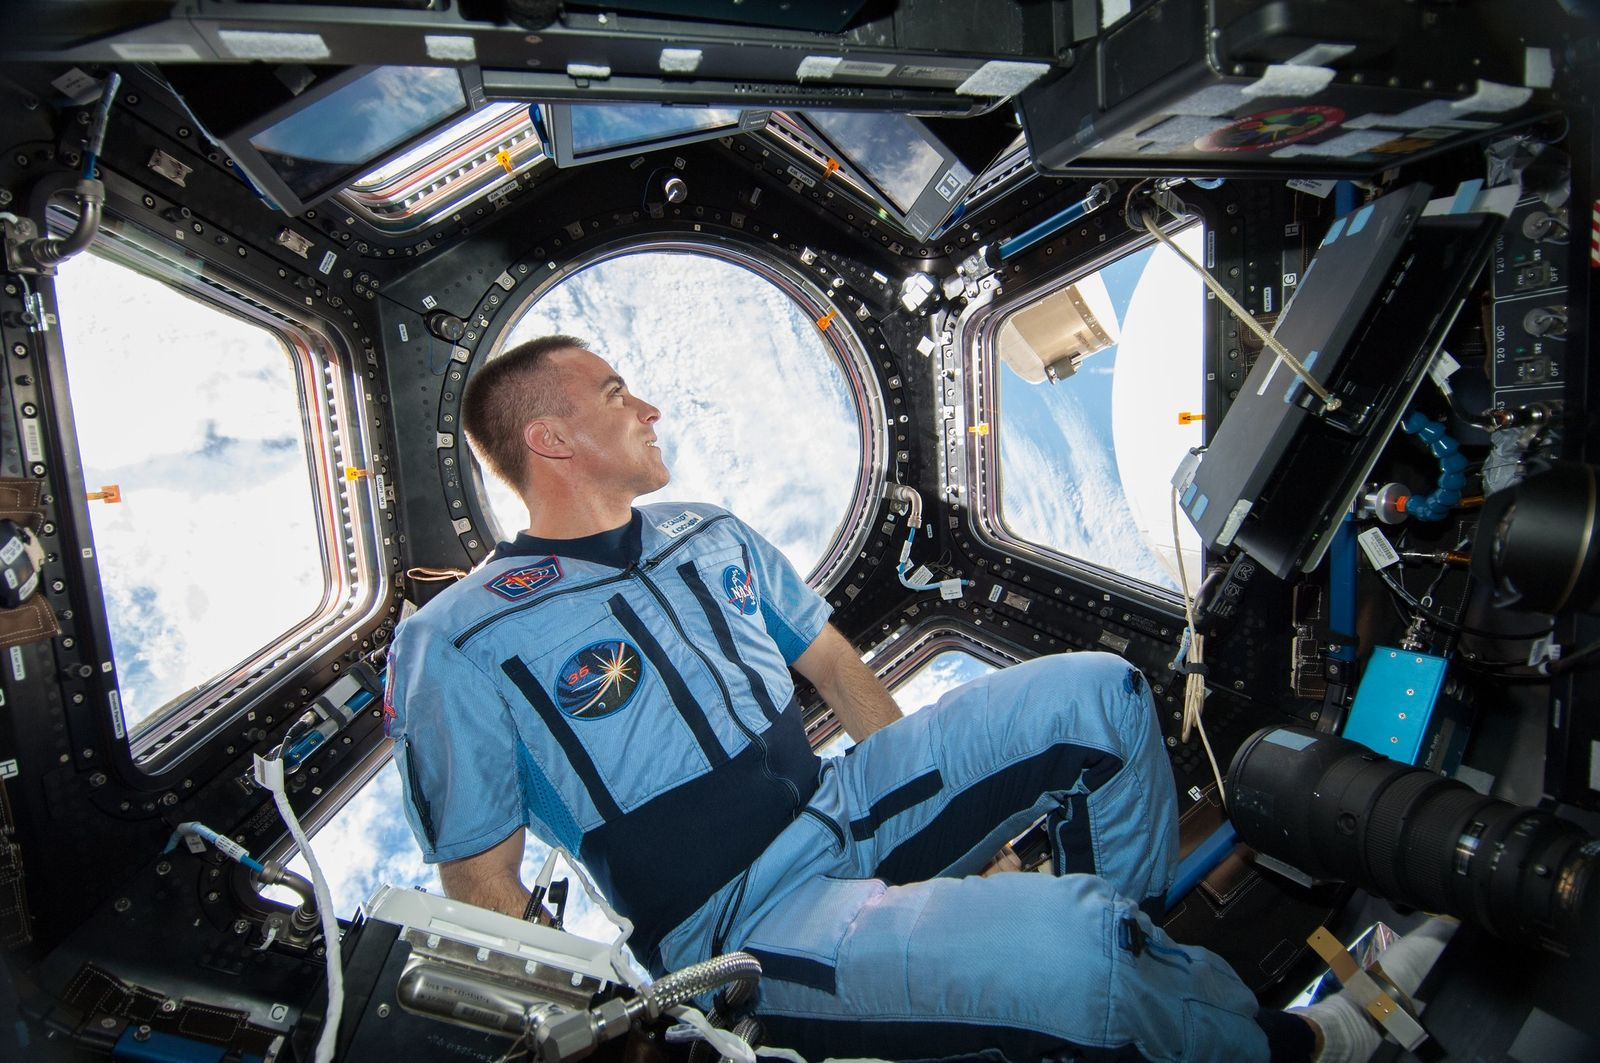 Stuck in a cramped space? This astronaut has some advice.